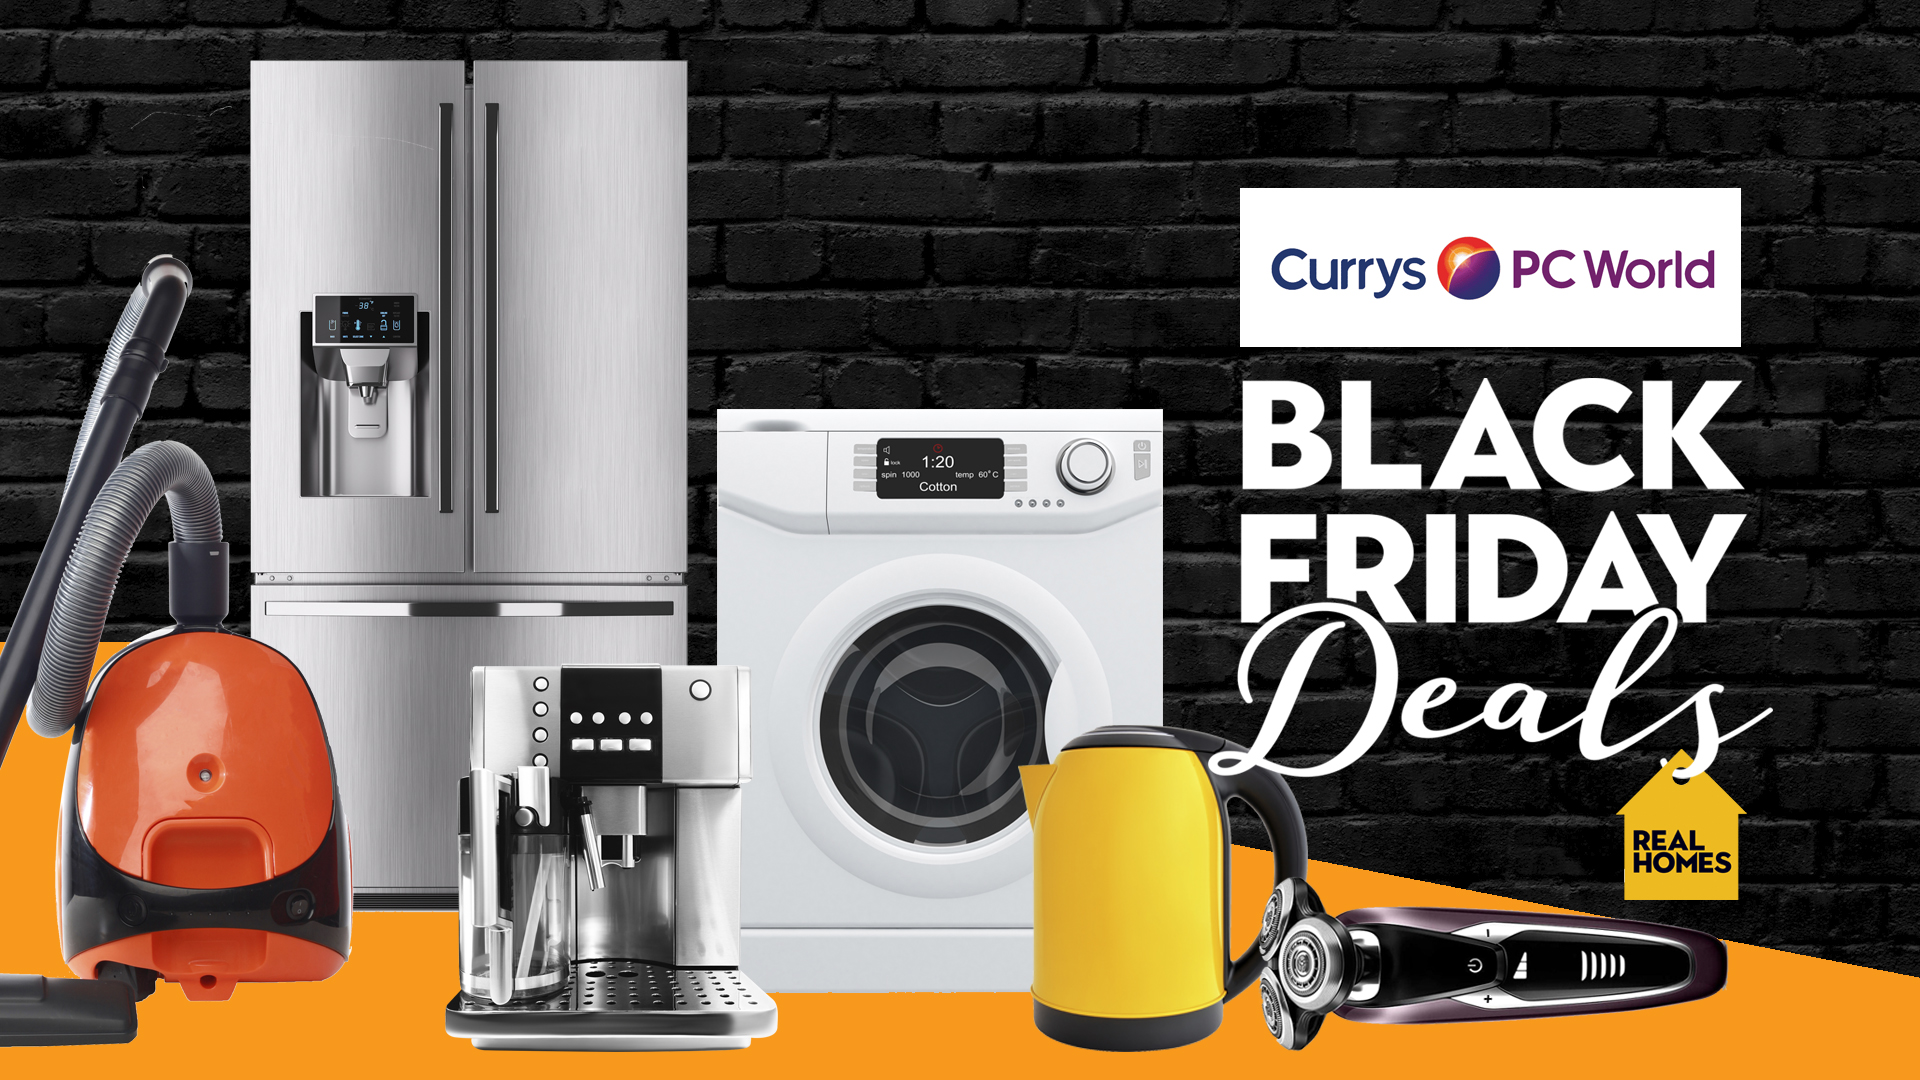 Fabulous Currys Clearance Sale 2019 Save On Appliances Electricals Ibusinesslaw Wood Chair Design Ideas Ibusinesslaworg